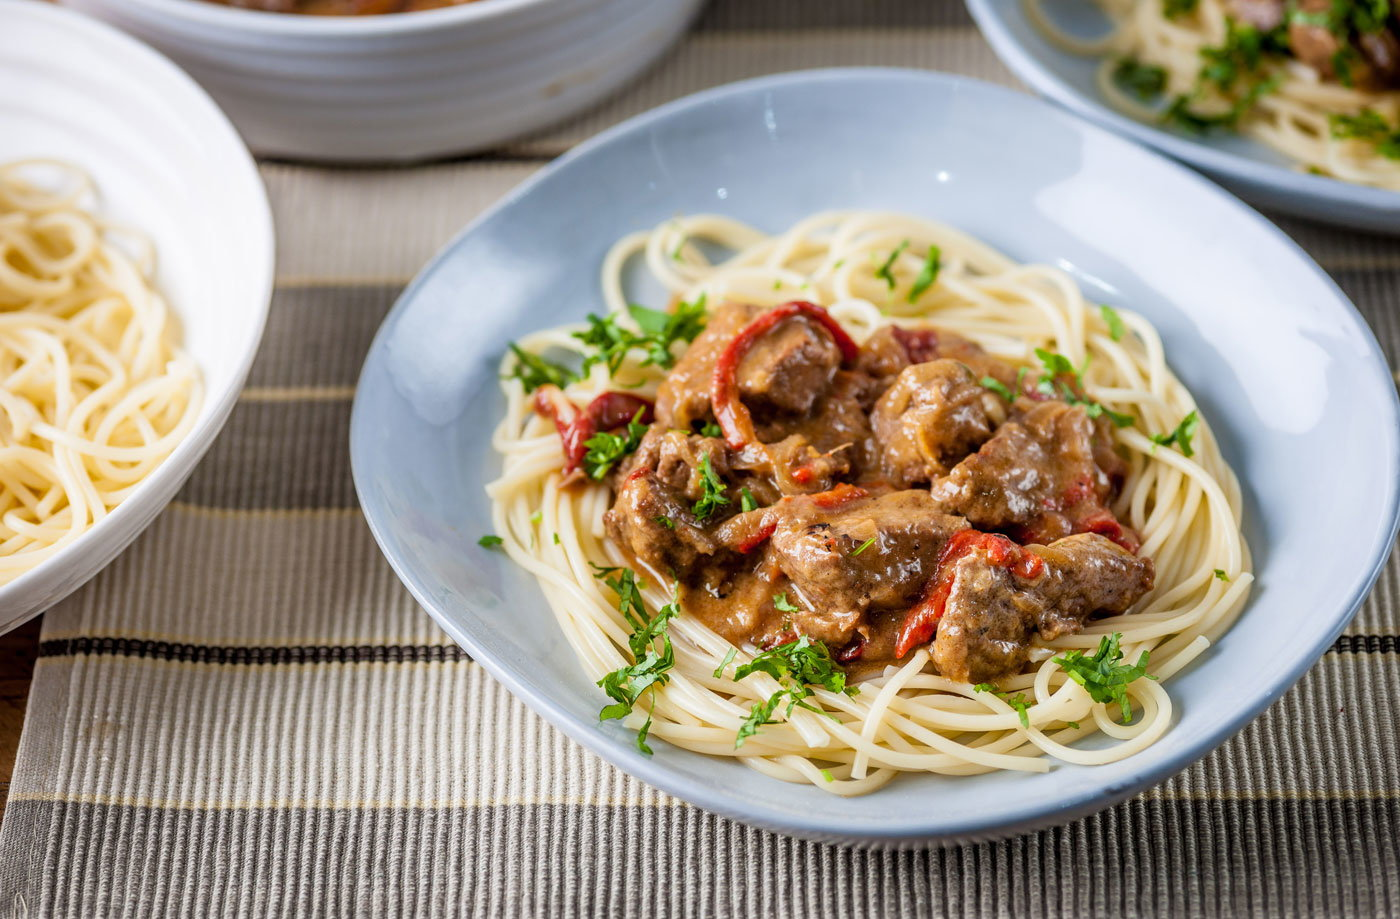 Geoffrey Smeddle's goulash and spaghetti recipe